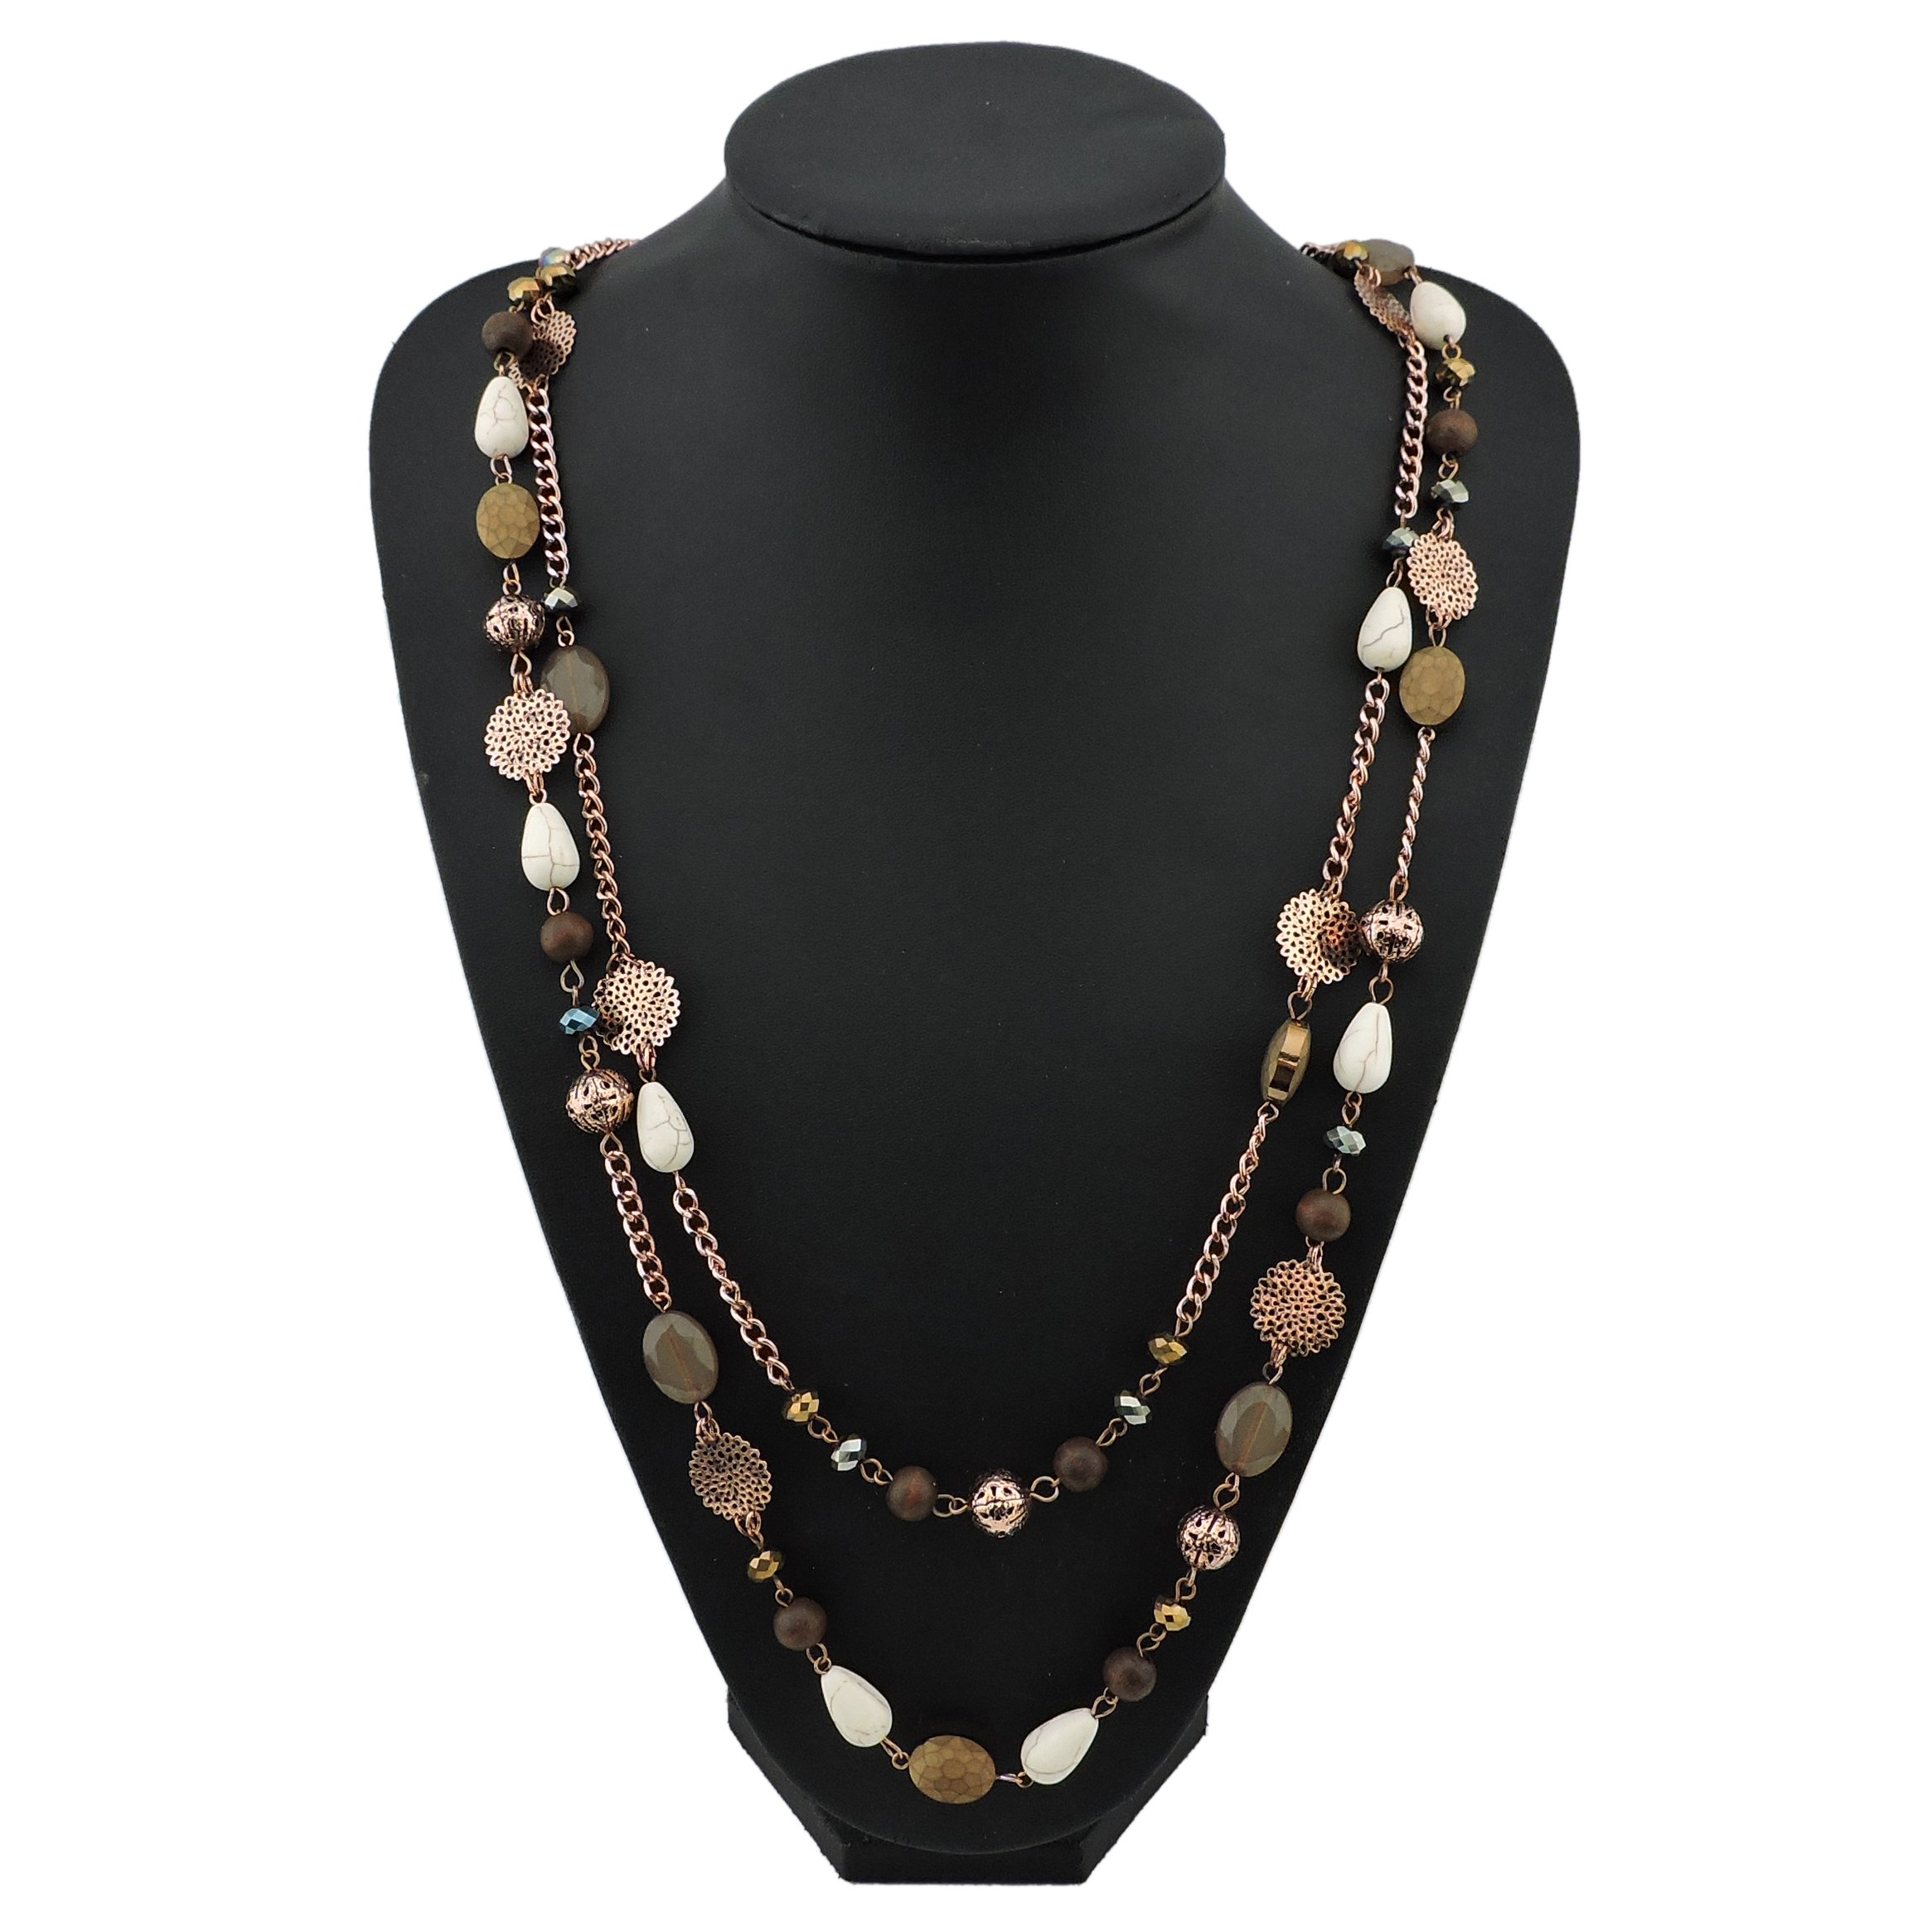 BOCAR 14K Gold Plated Link Chain 2 Layer Crystal Wood Acrylic Colorful Women Party Long Necklace Gift (NK-10084-brown)